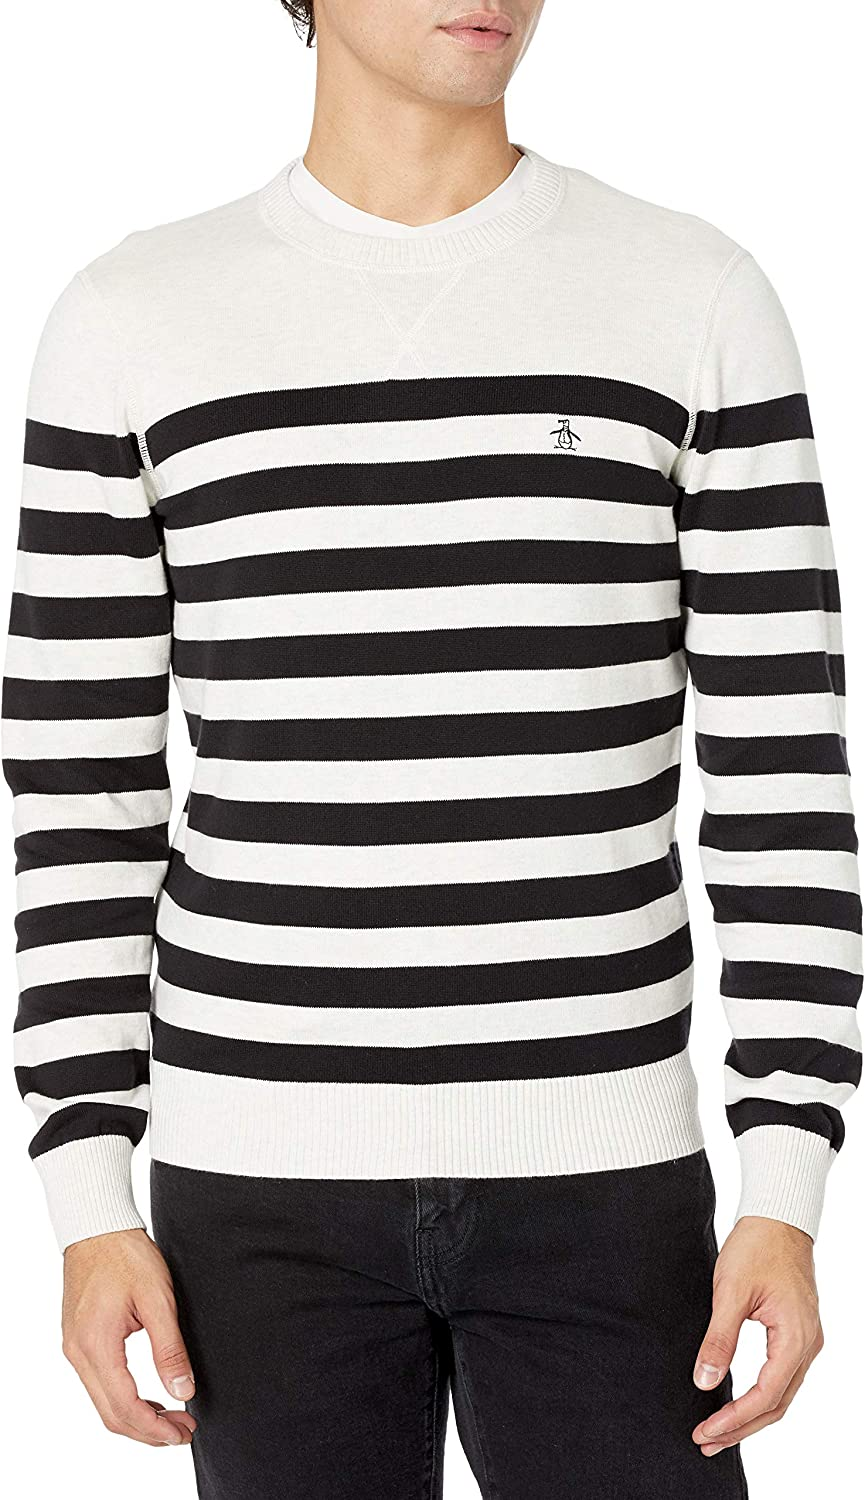 Original Penguin Men's safety Striped Cotton Ranking TOP15 Sweater Sleeve Long